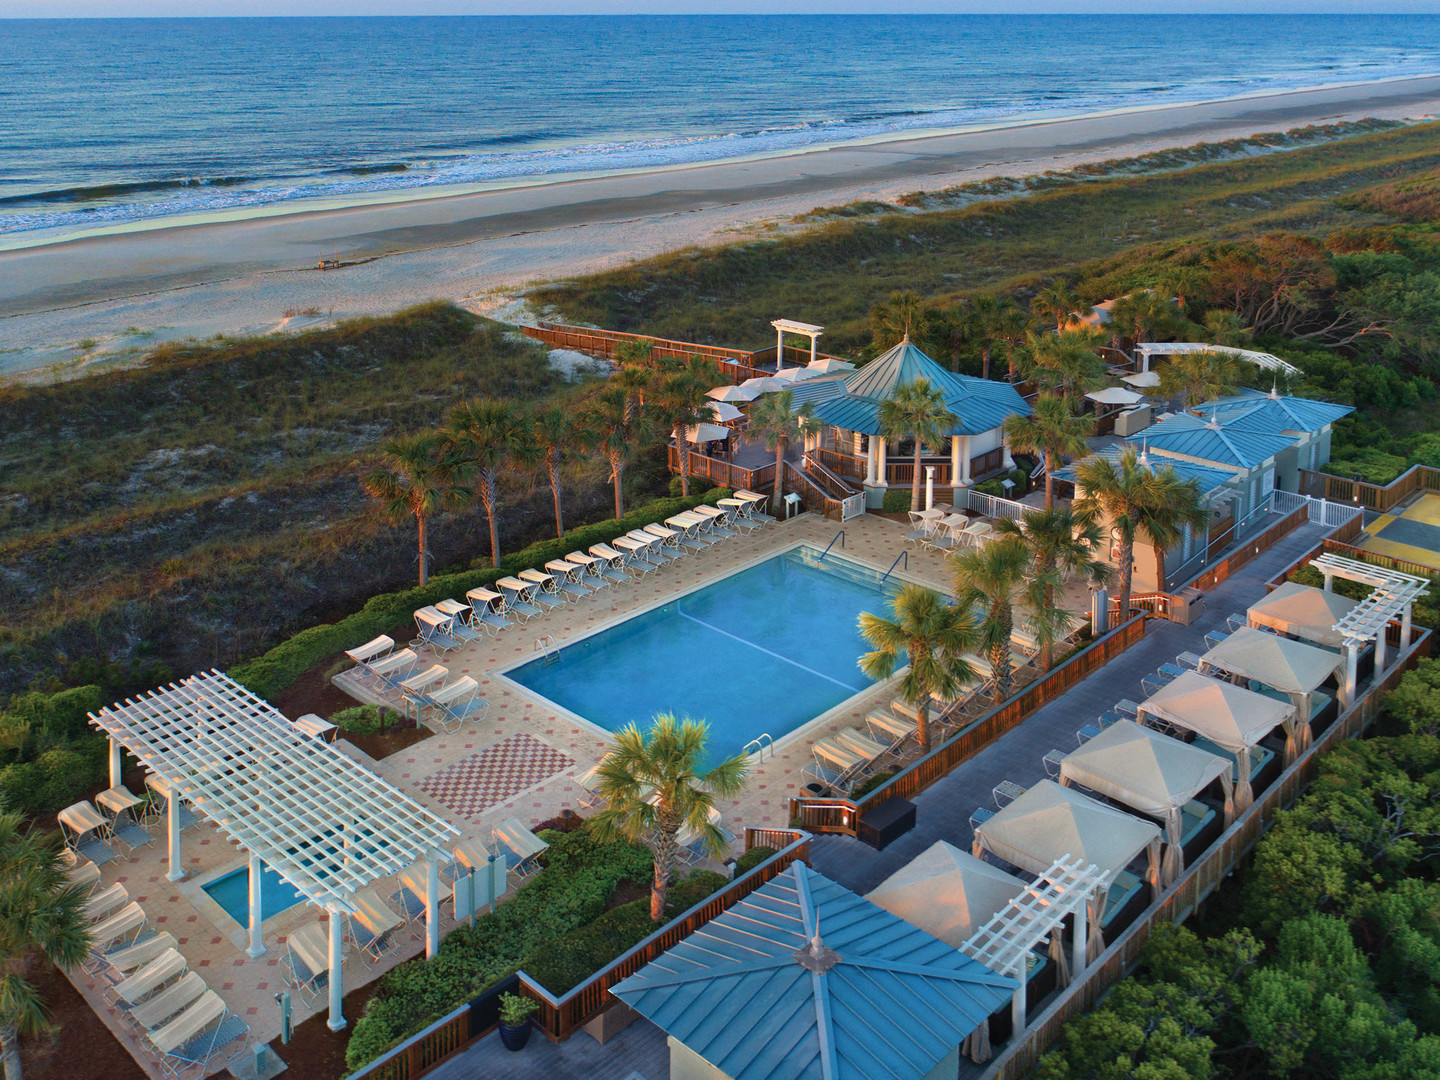 Marriott's SurfWatch<span class='trademark'>®</span> Sea Surf Pool. Marriott's SurfWatch<span class='trademark'>®</span> is located in Hilton Head Island, South Carolina United States.